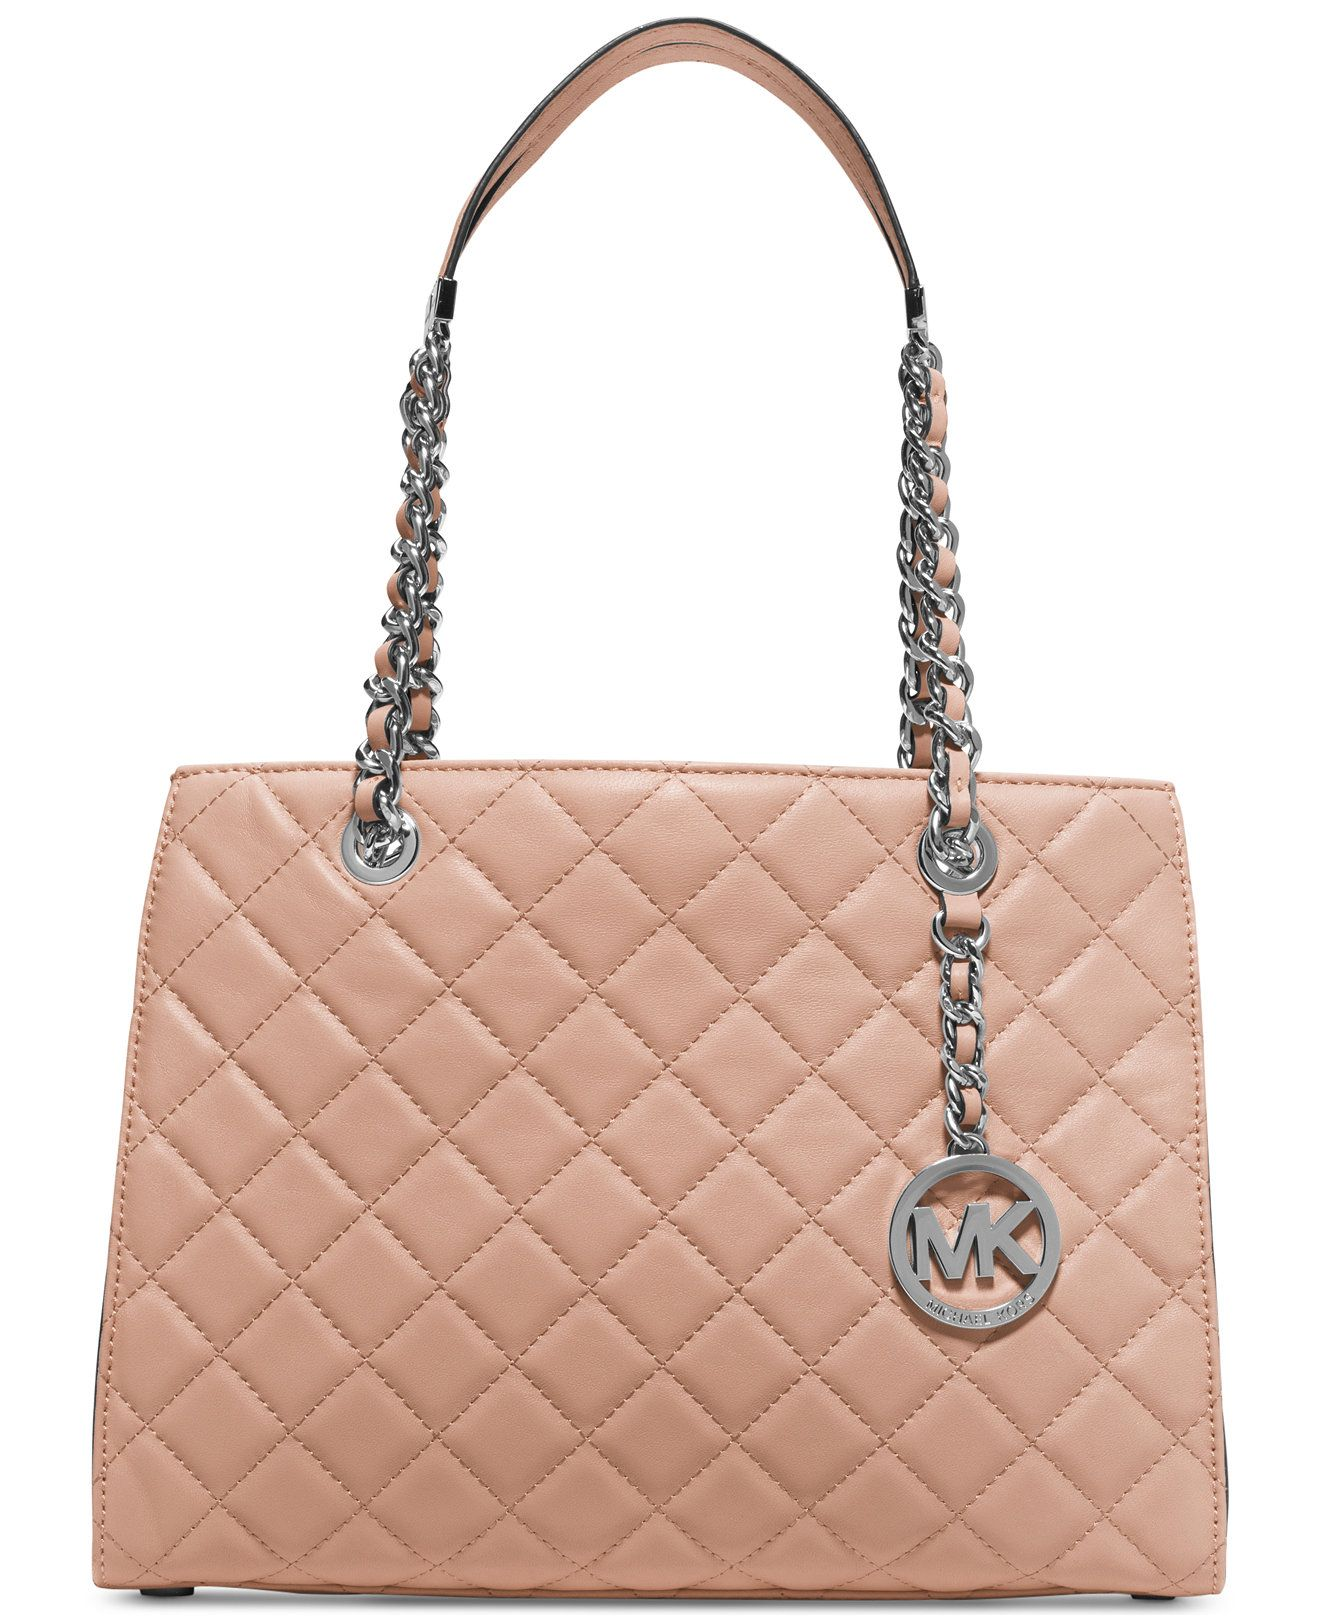 e6a2e49ccc5c MICHAEL Michael Kors Susannah Medium Tote Peach Leather Tufted Handbag  Shoulder Chain Designer Fashion